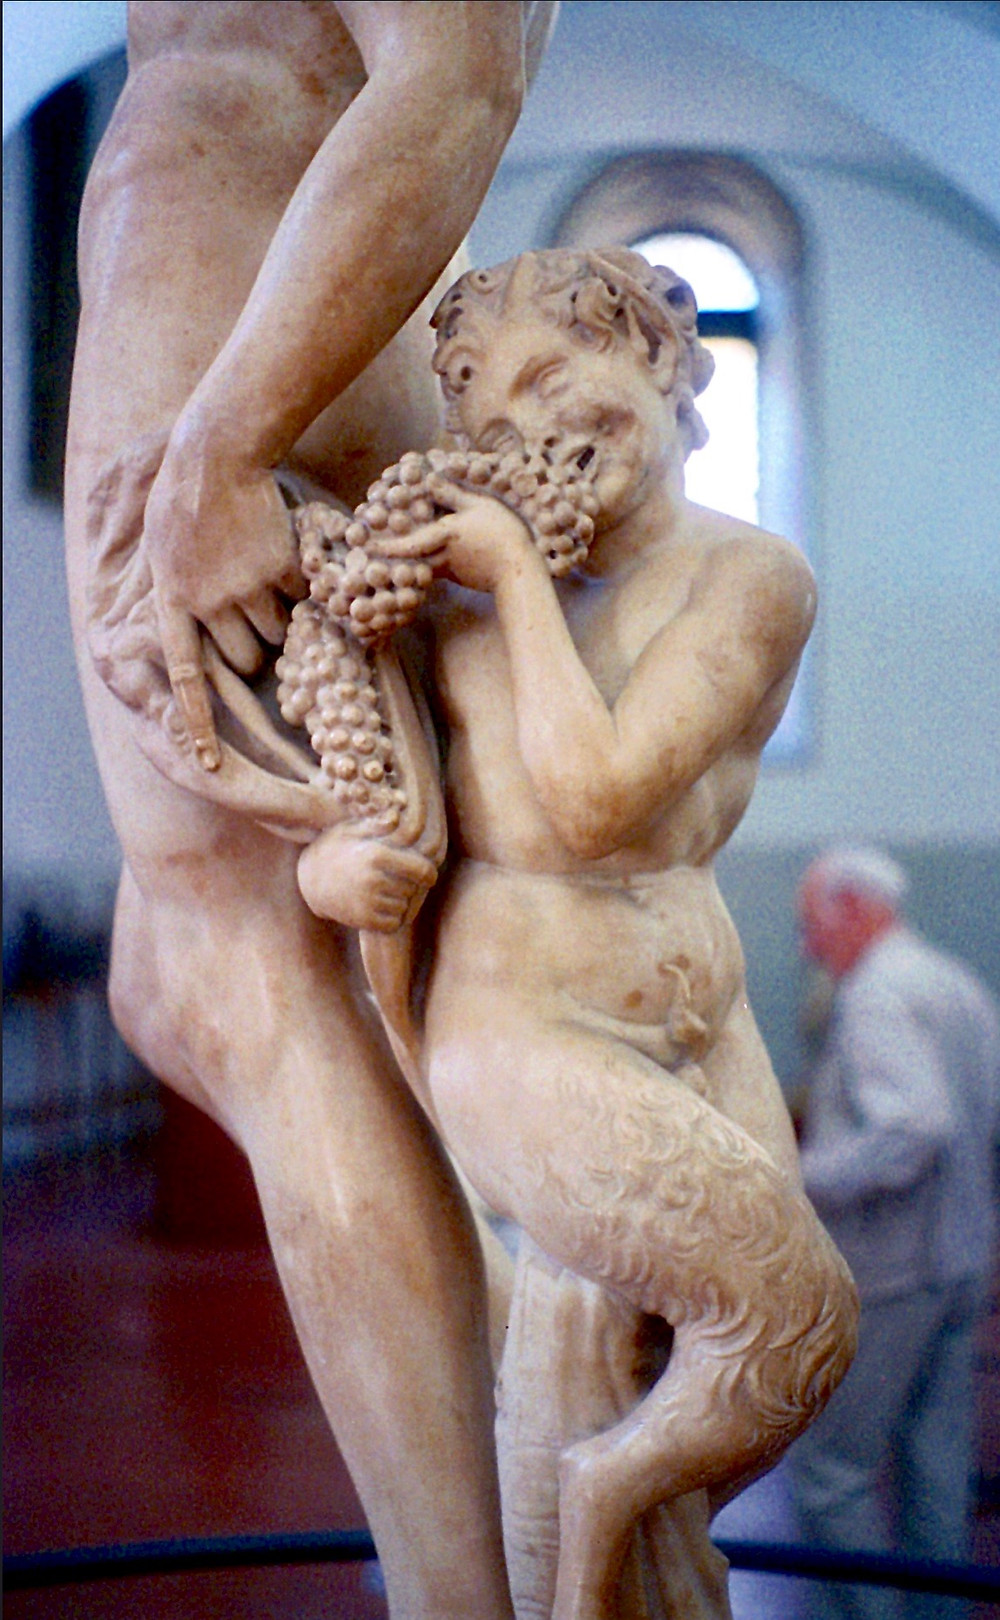 detail of Michelangelo's Bacchus sculpture in Florence's Bargello Museum